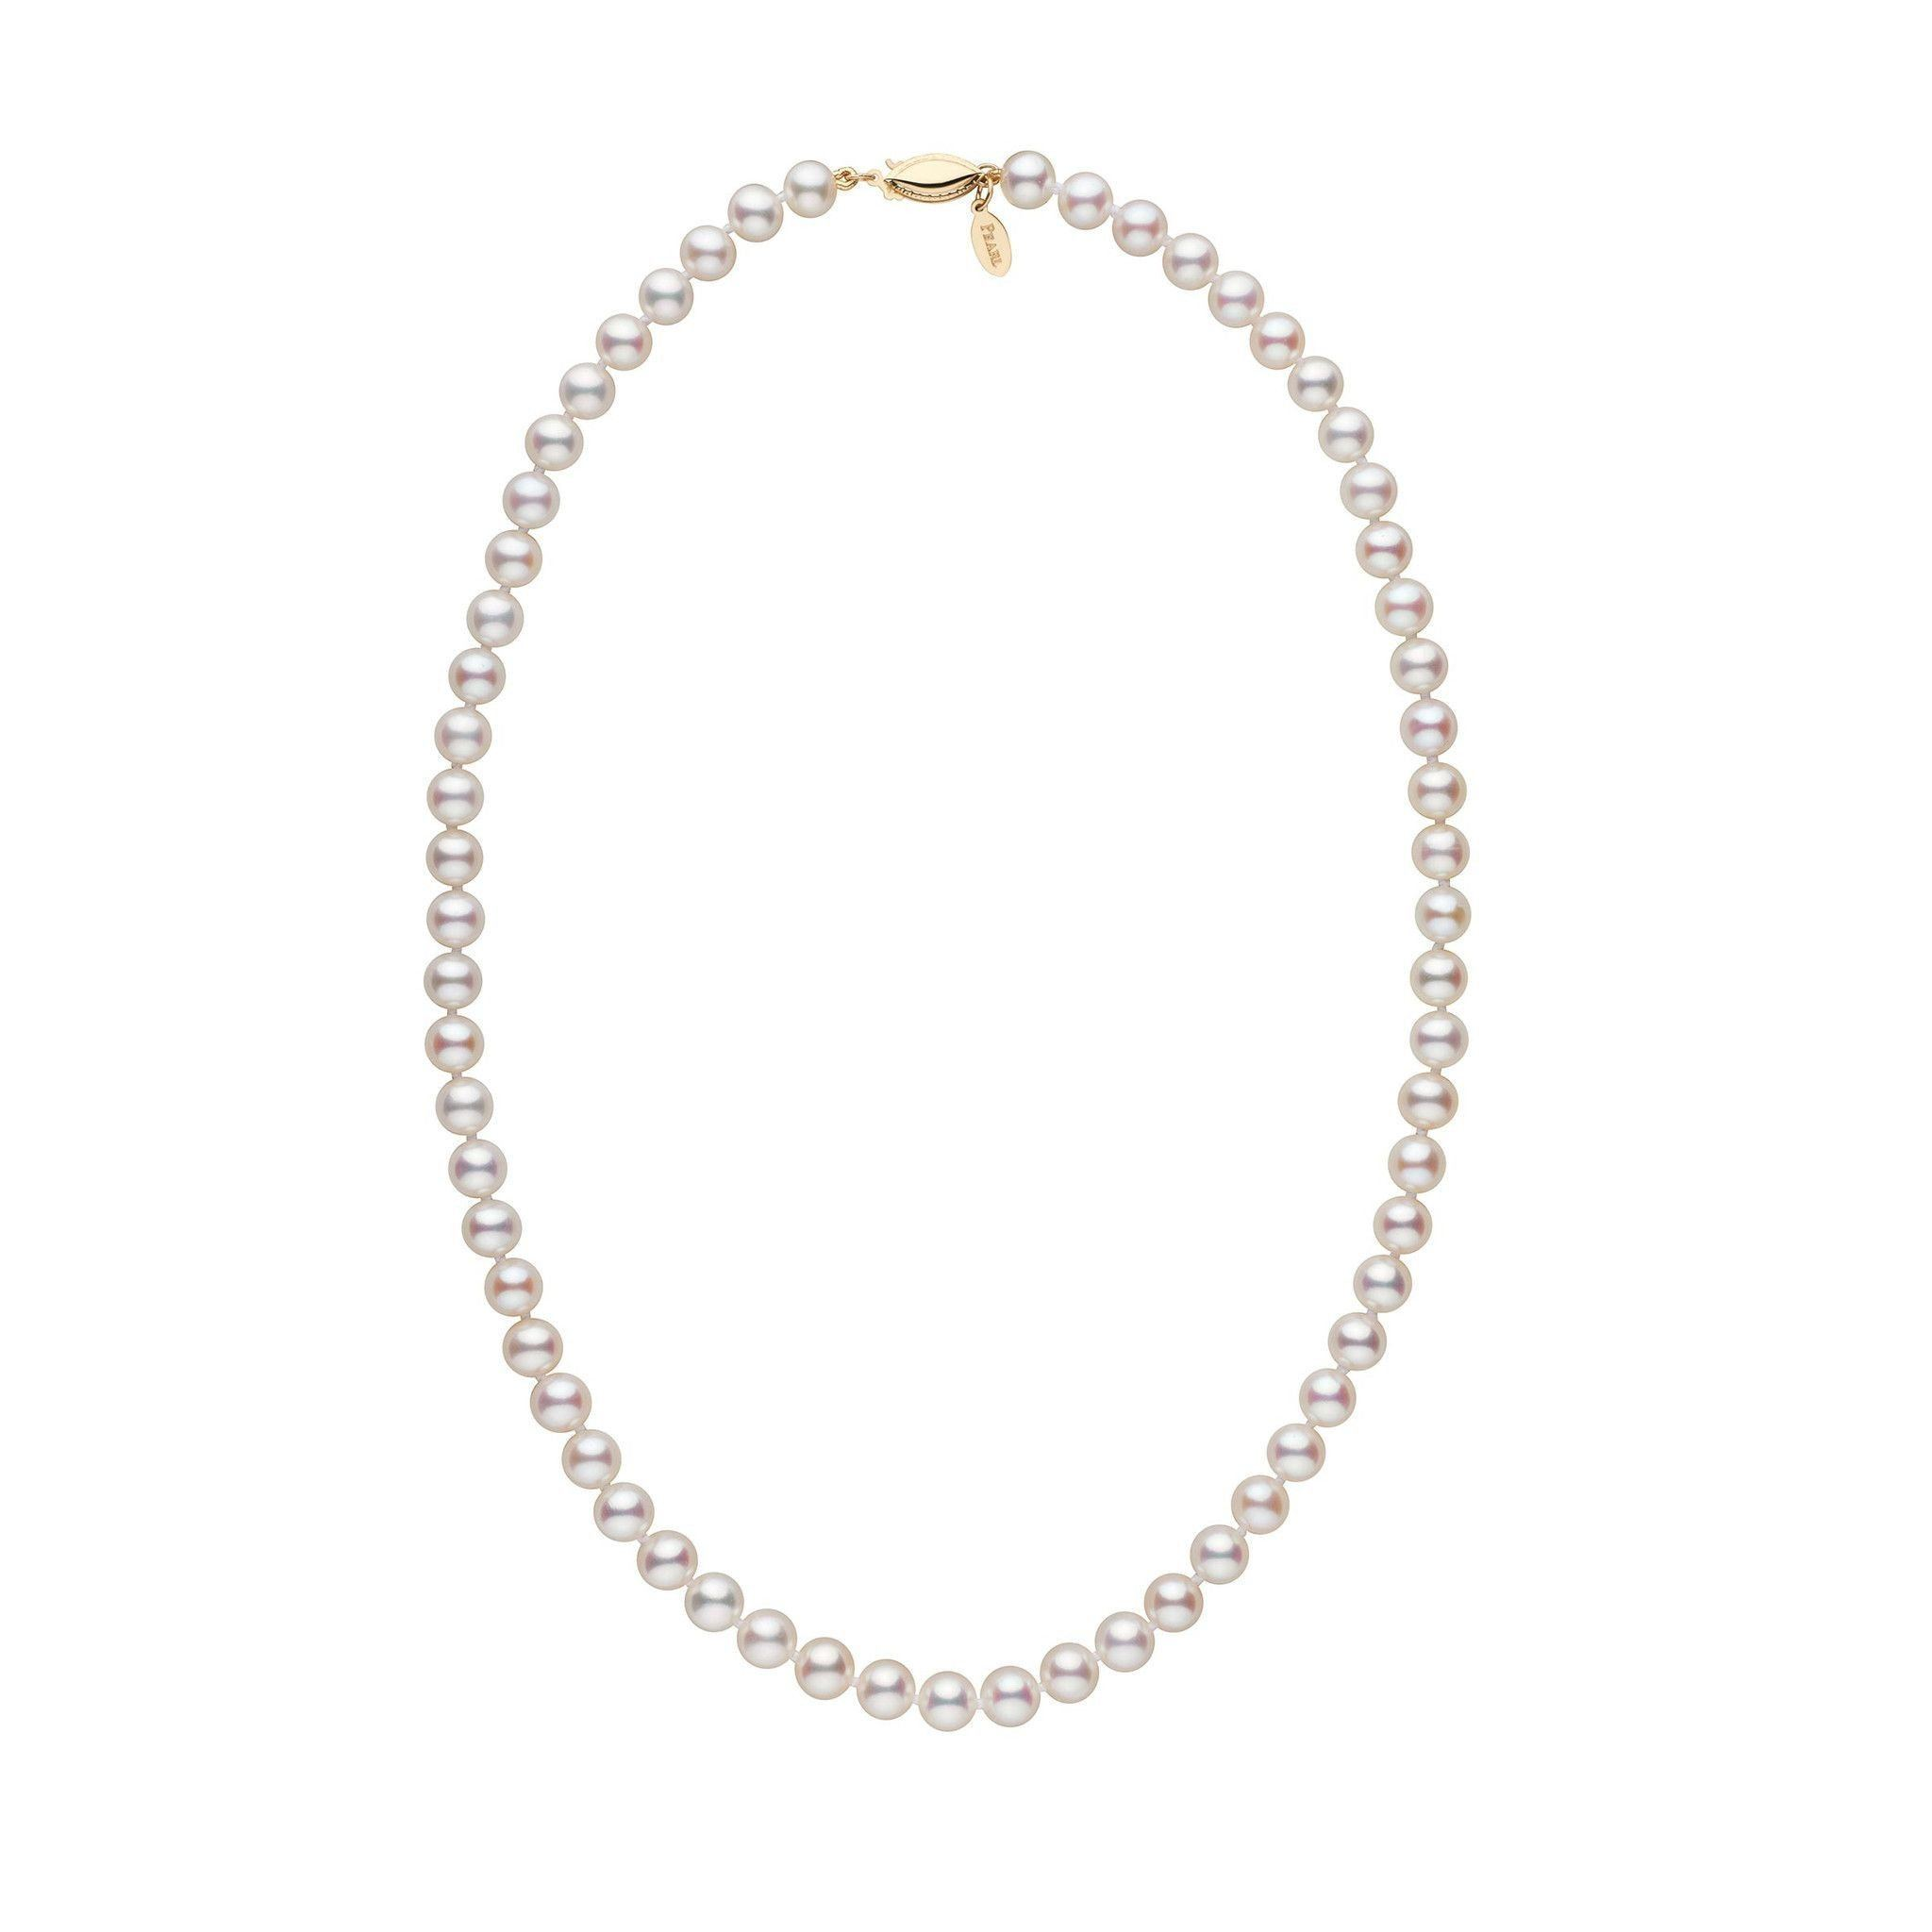 6.5-7.0 mm 18 Inch White Freshadama Freshwater Pearl Necklace